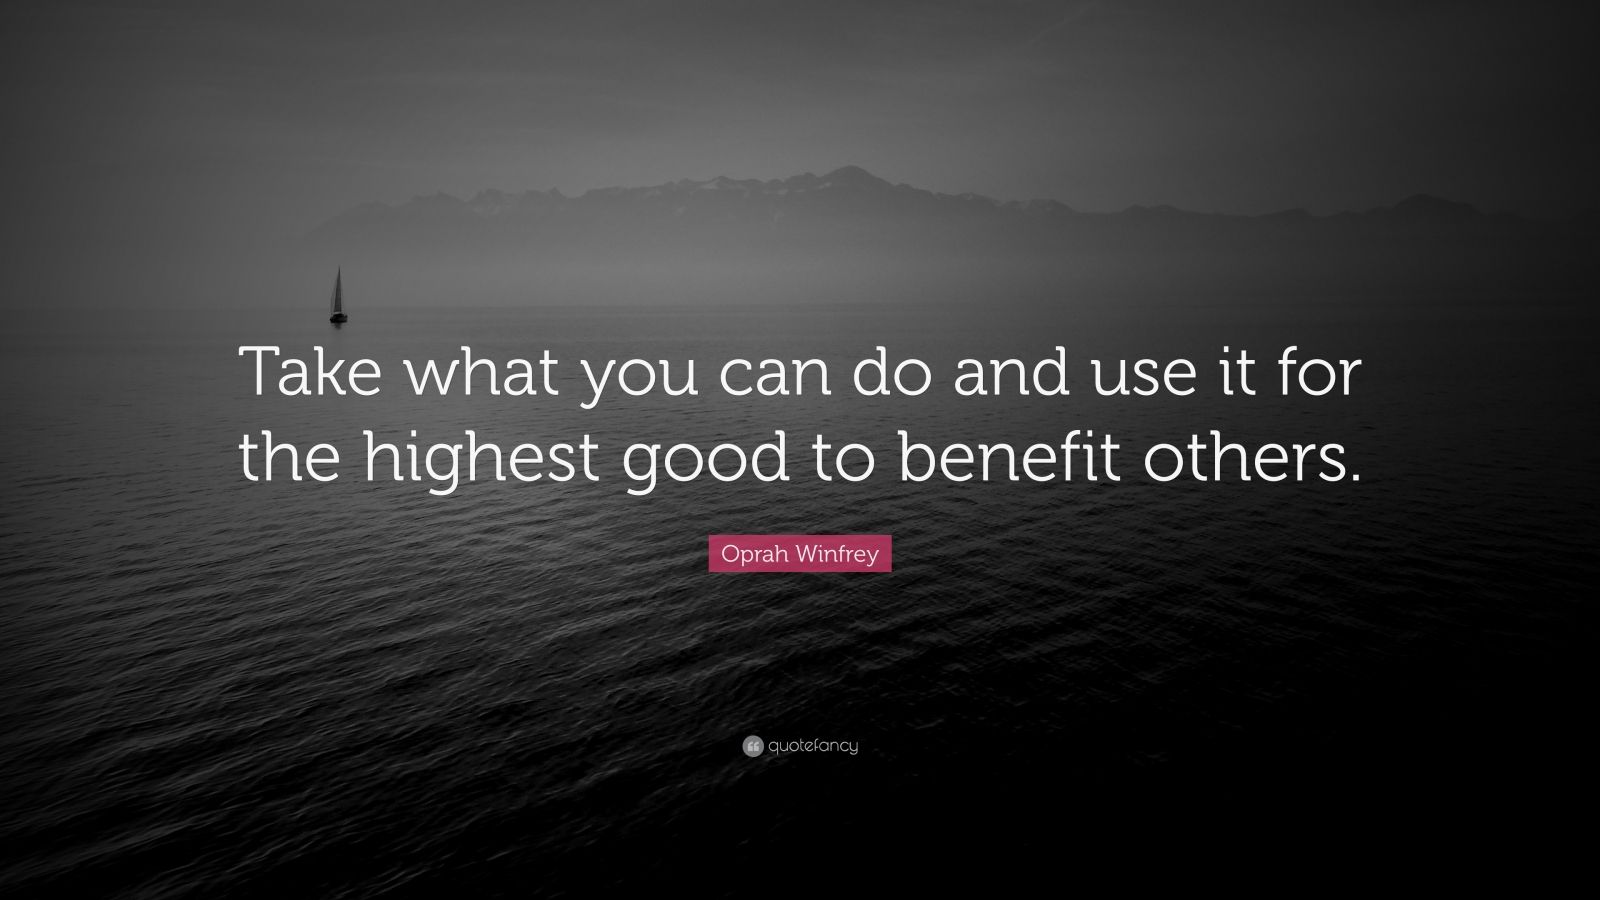 """Oprah Winfrey Quote: """"Take what you can do and use it for the highest good to benefit others."""""""